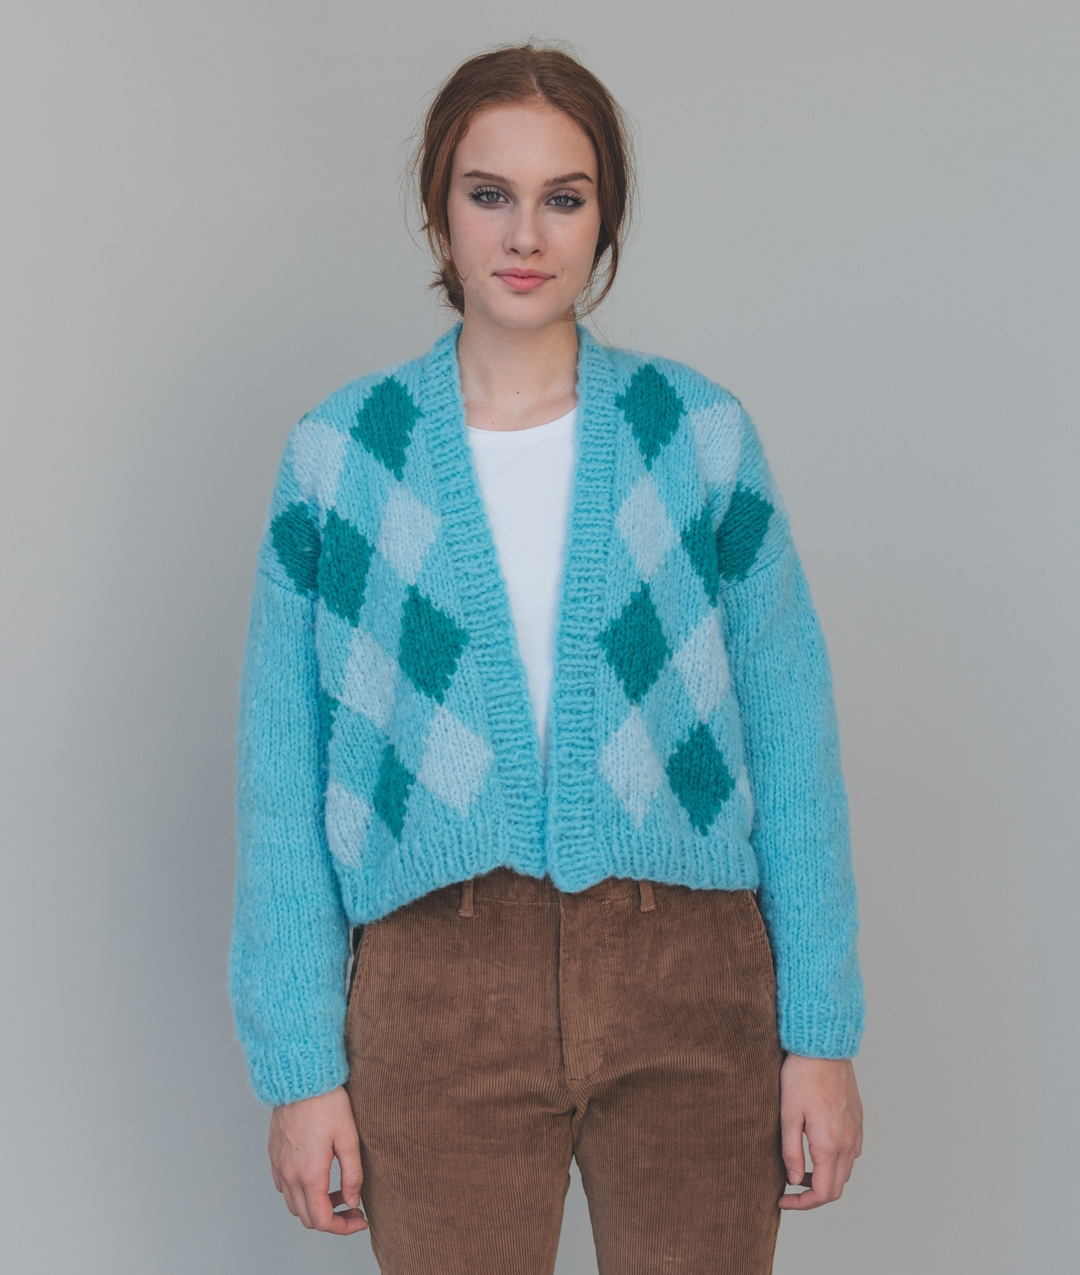 Cardigans and Vests  - Wool - ICE CREAM CARDI - 1